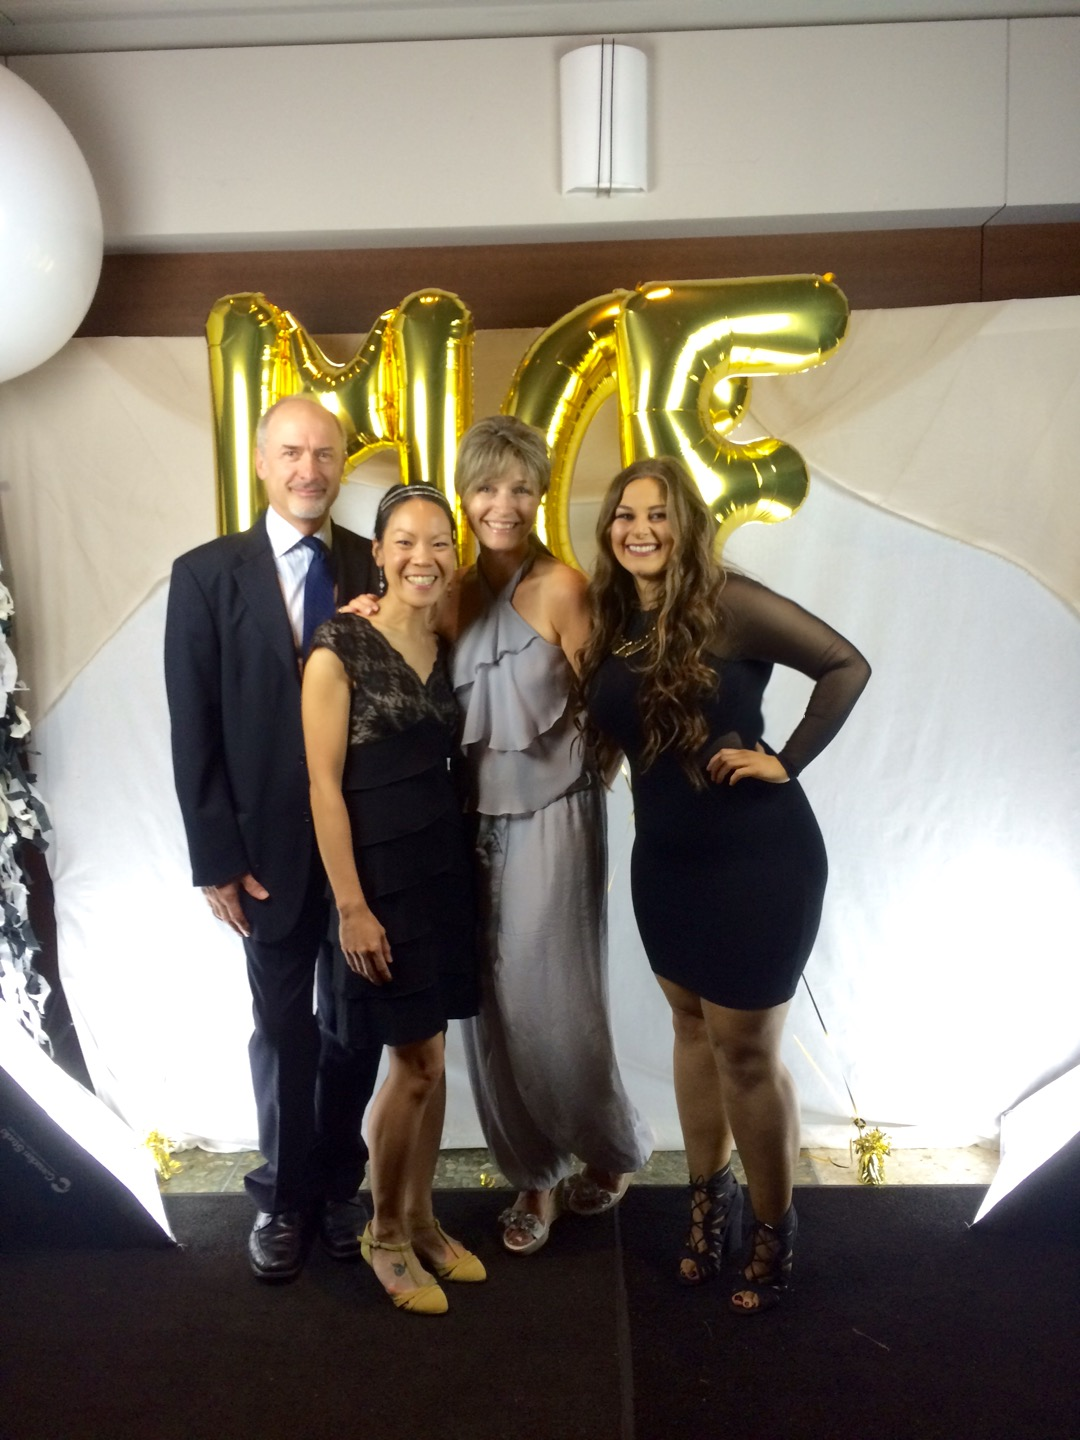 Dr. Sandi Dunn (CEO + Founder) and Dr. Nick Sharp (Chief of Operations) pictured alongside Dr. My-My Huynh (Research Scientist) and Luisa D'Amato (Research Technician) at the 21st Annual Michael Cuccione Foundation Gala